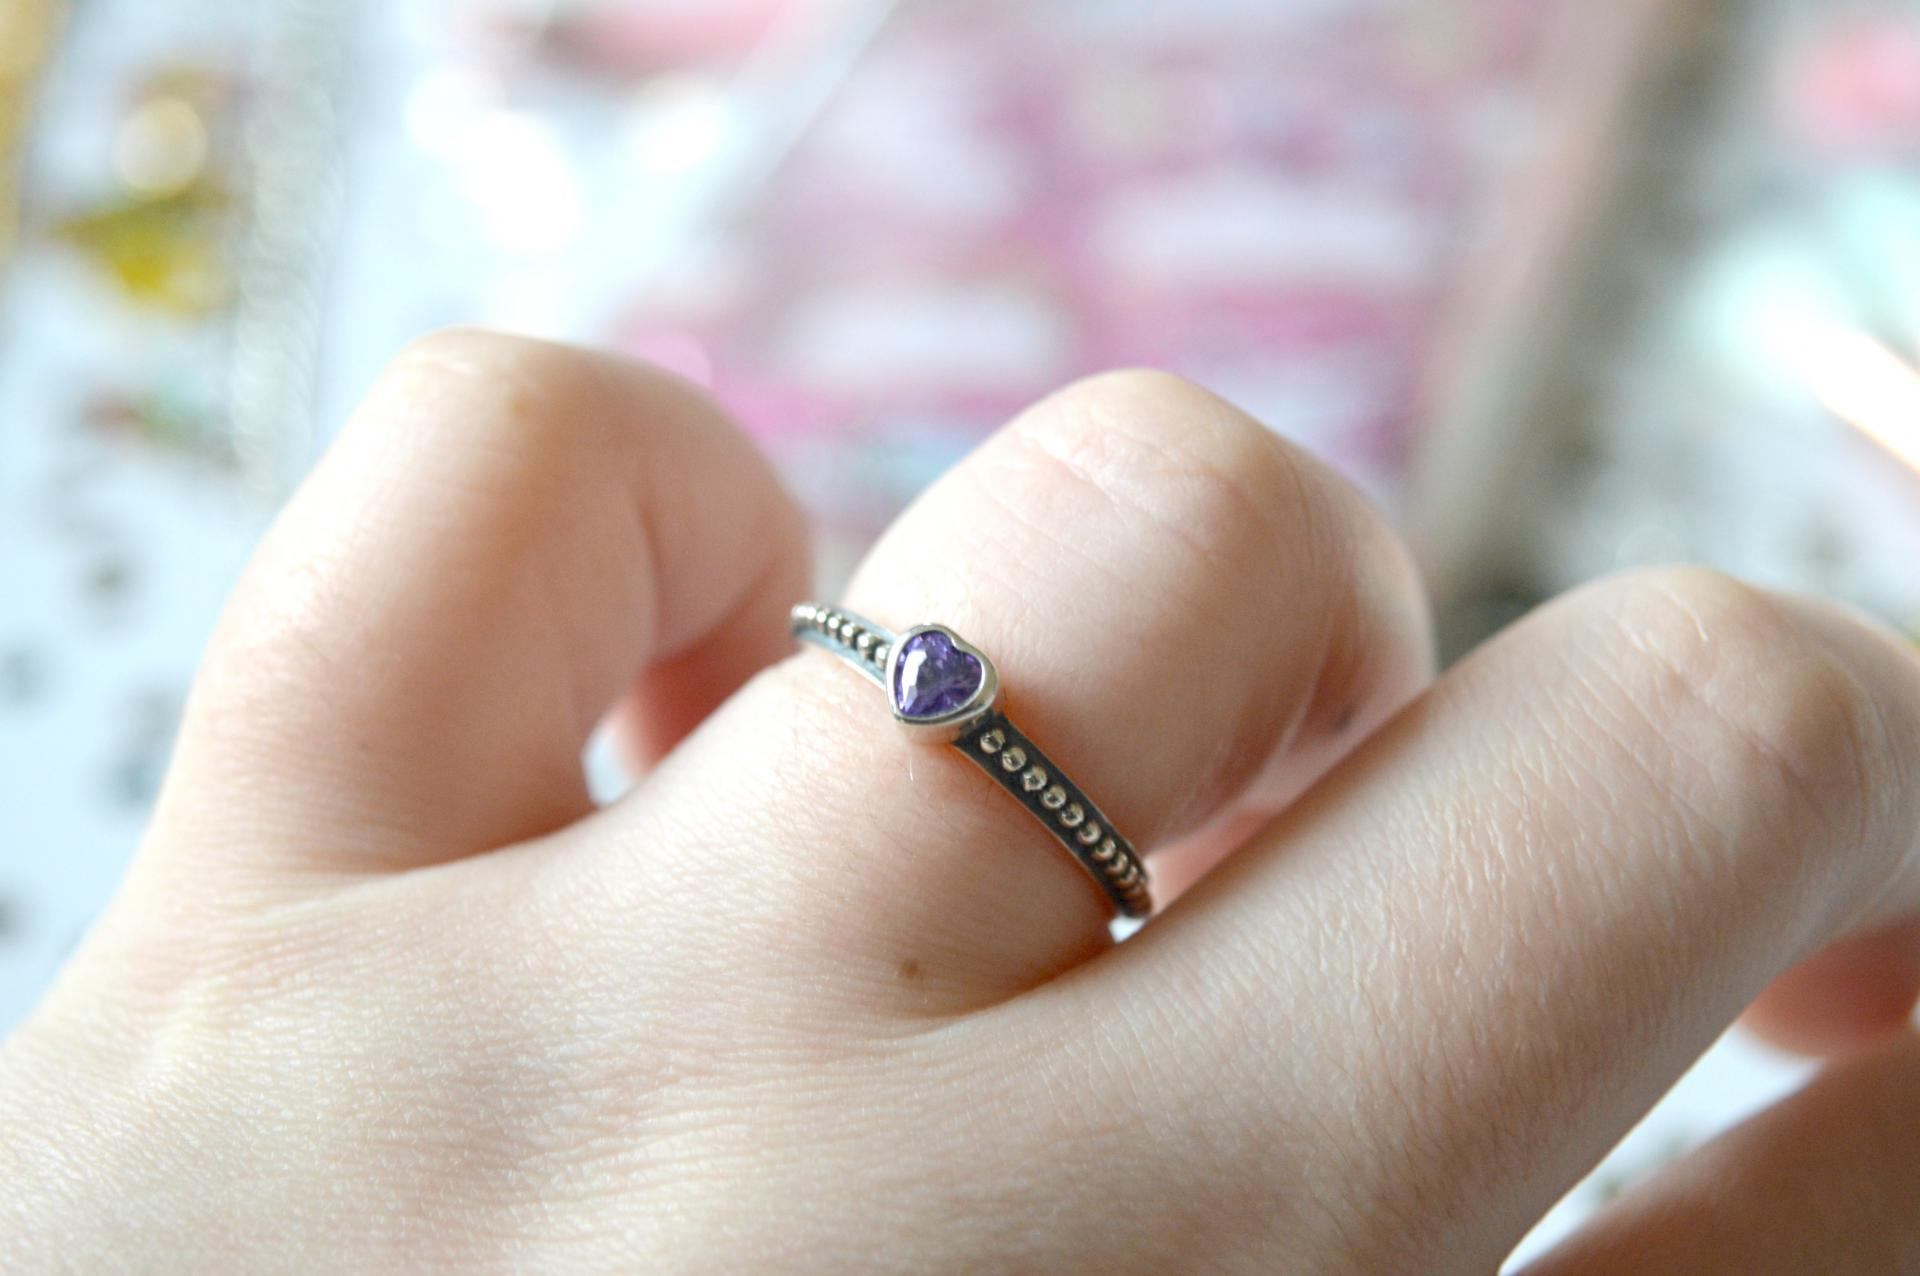 AliExpress Puple Heart Pandora Dupe Ring